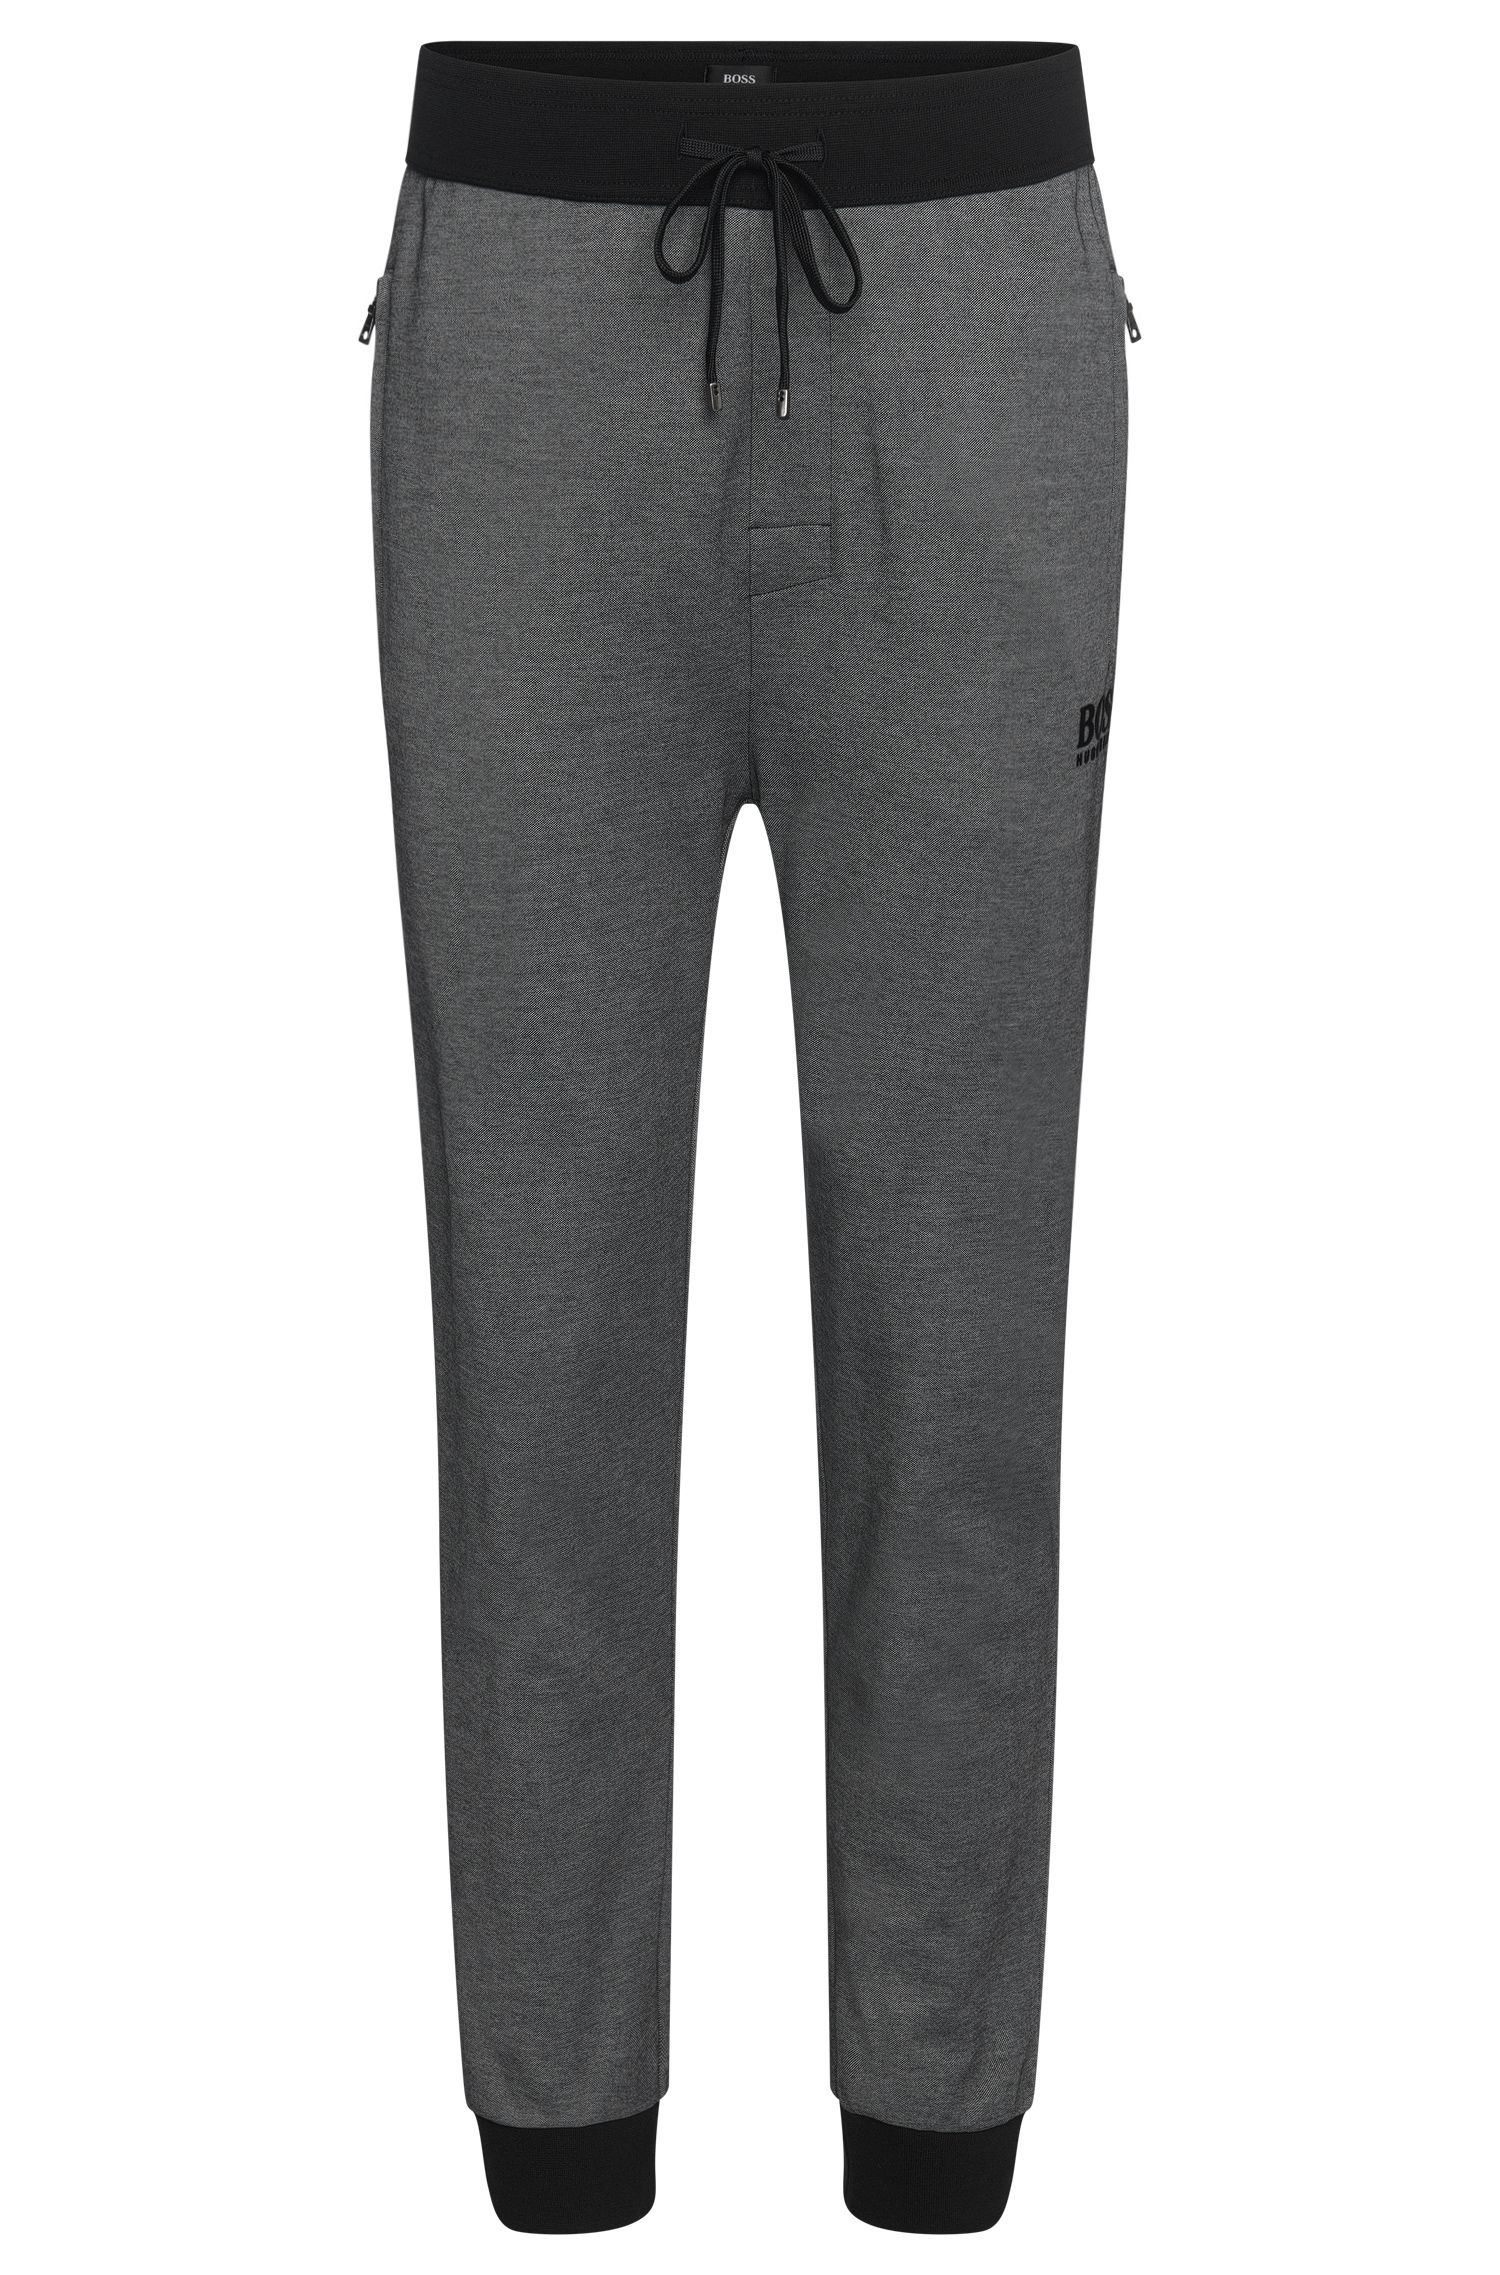 'Long Pant Cuffs' | Cotton Blend Drawstring Lounge Pants